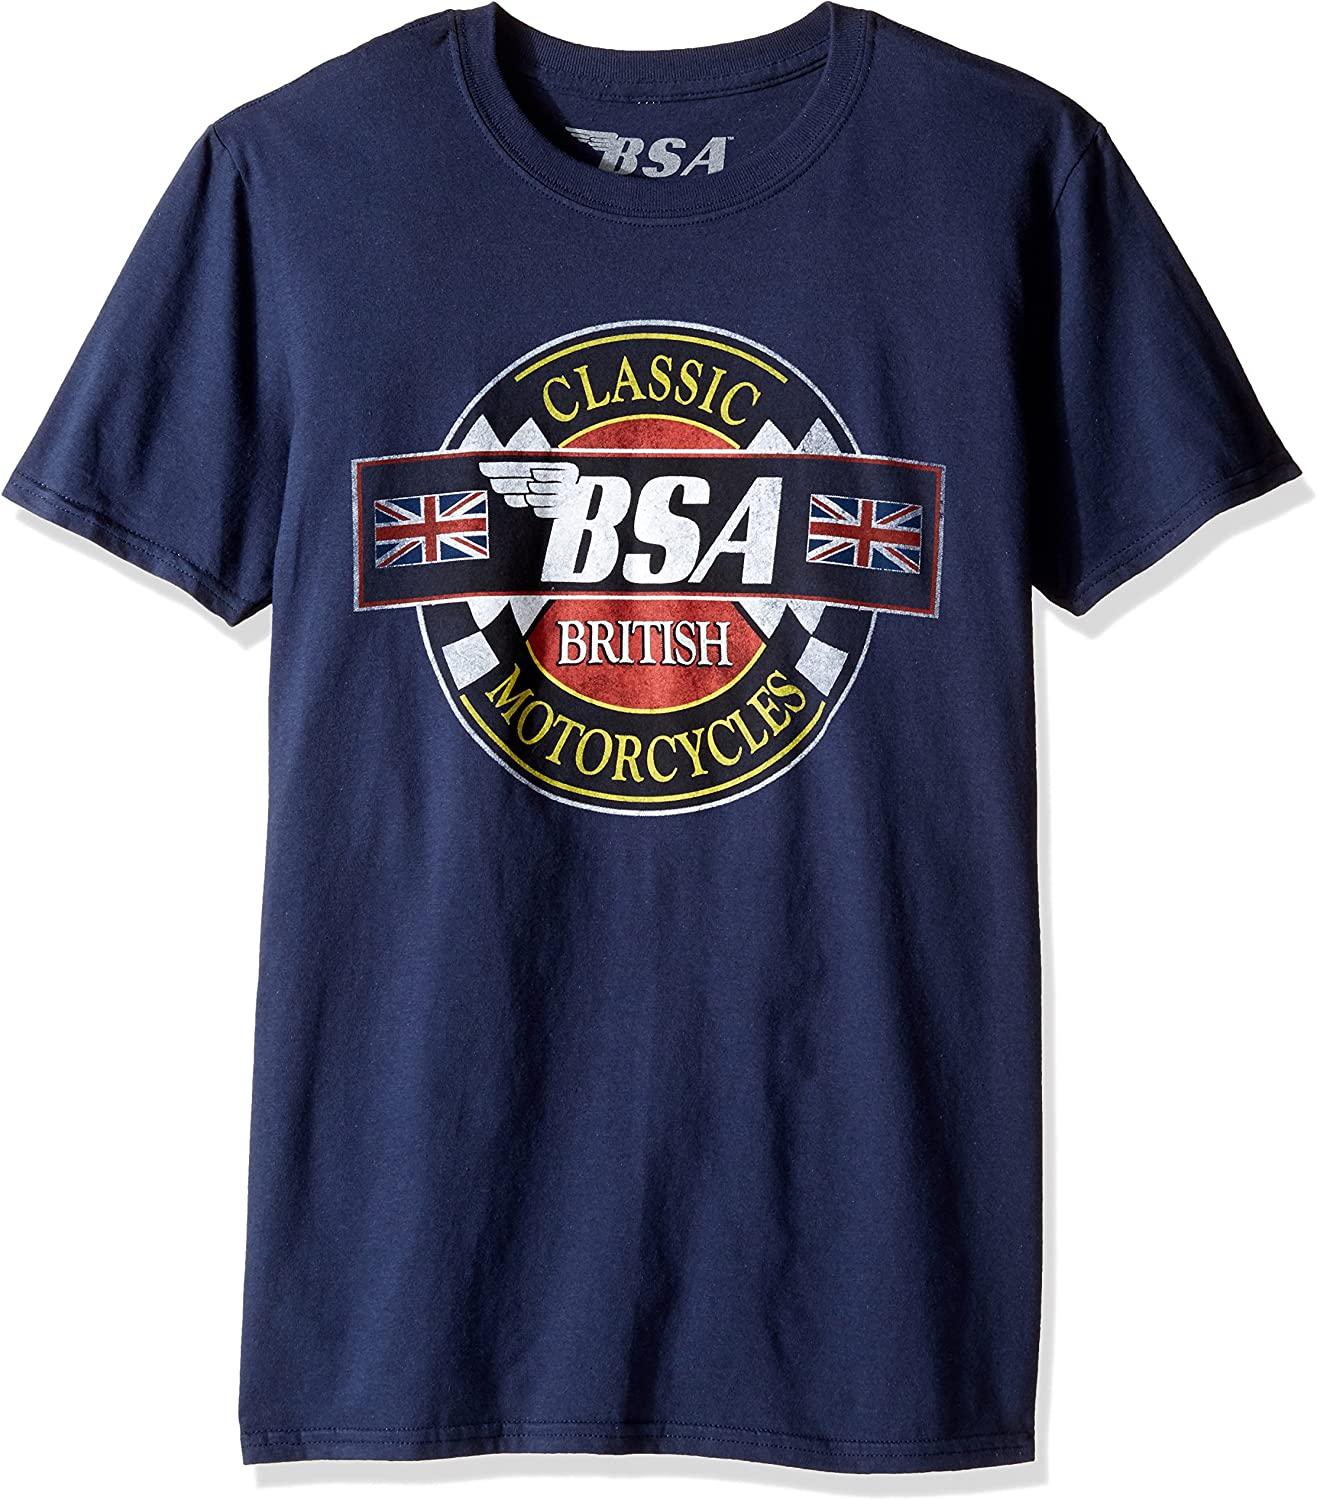 New BSA MOTORCYCLE Classic Logo Racing Men/'s White Black T-Shirt Size S to 3XL